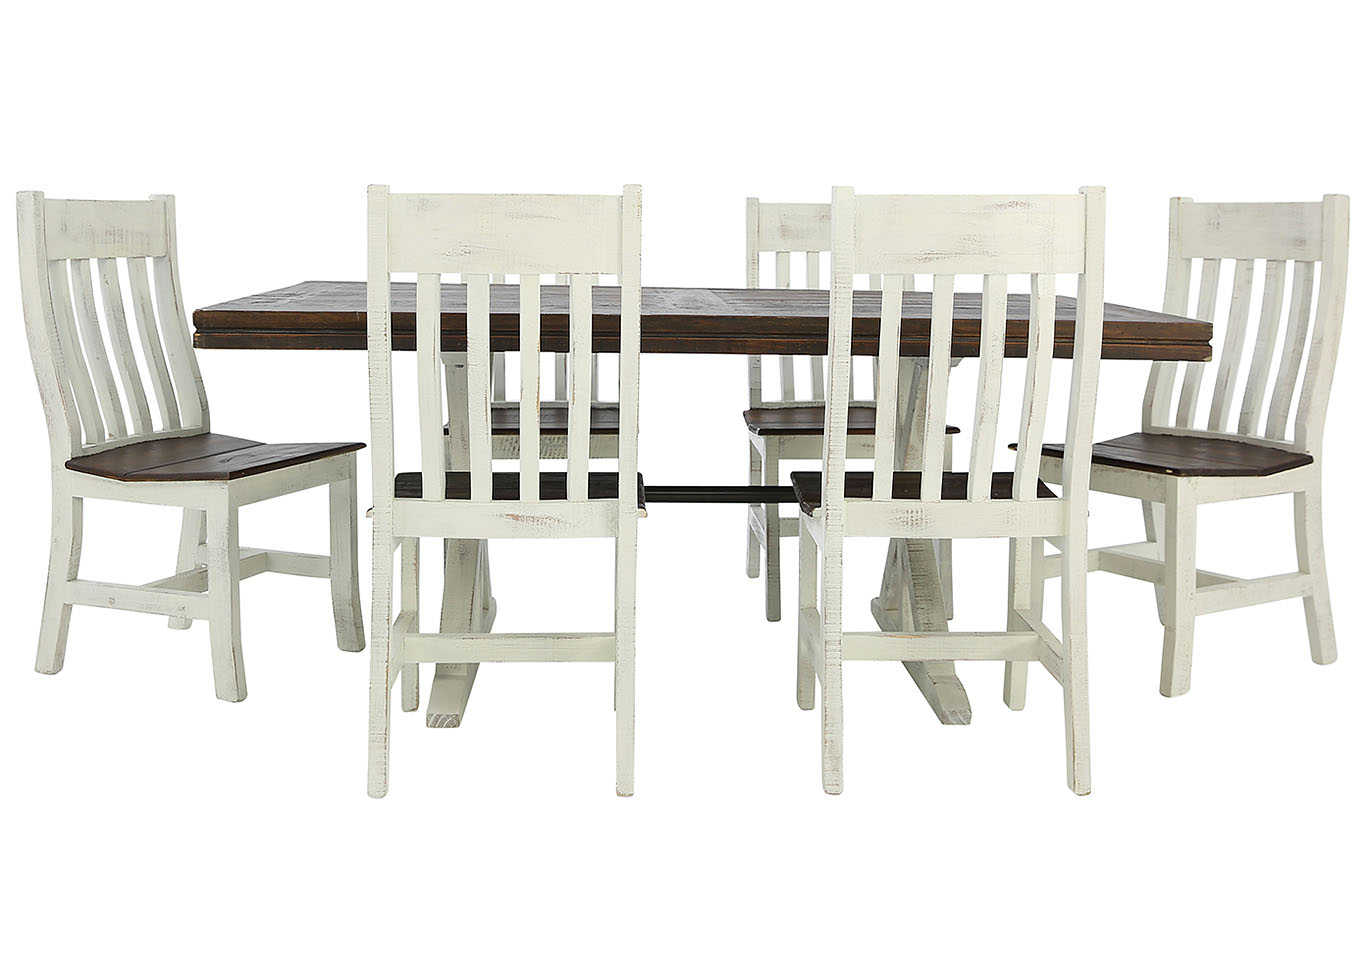 KARA RUSTIC DINING TABLEVINTAGE FURNITURE LLC